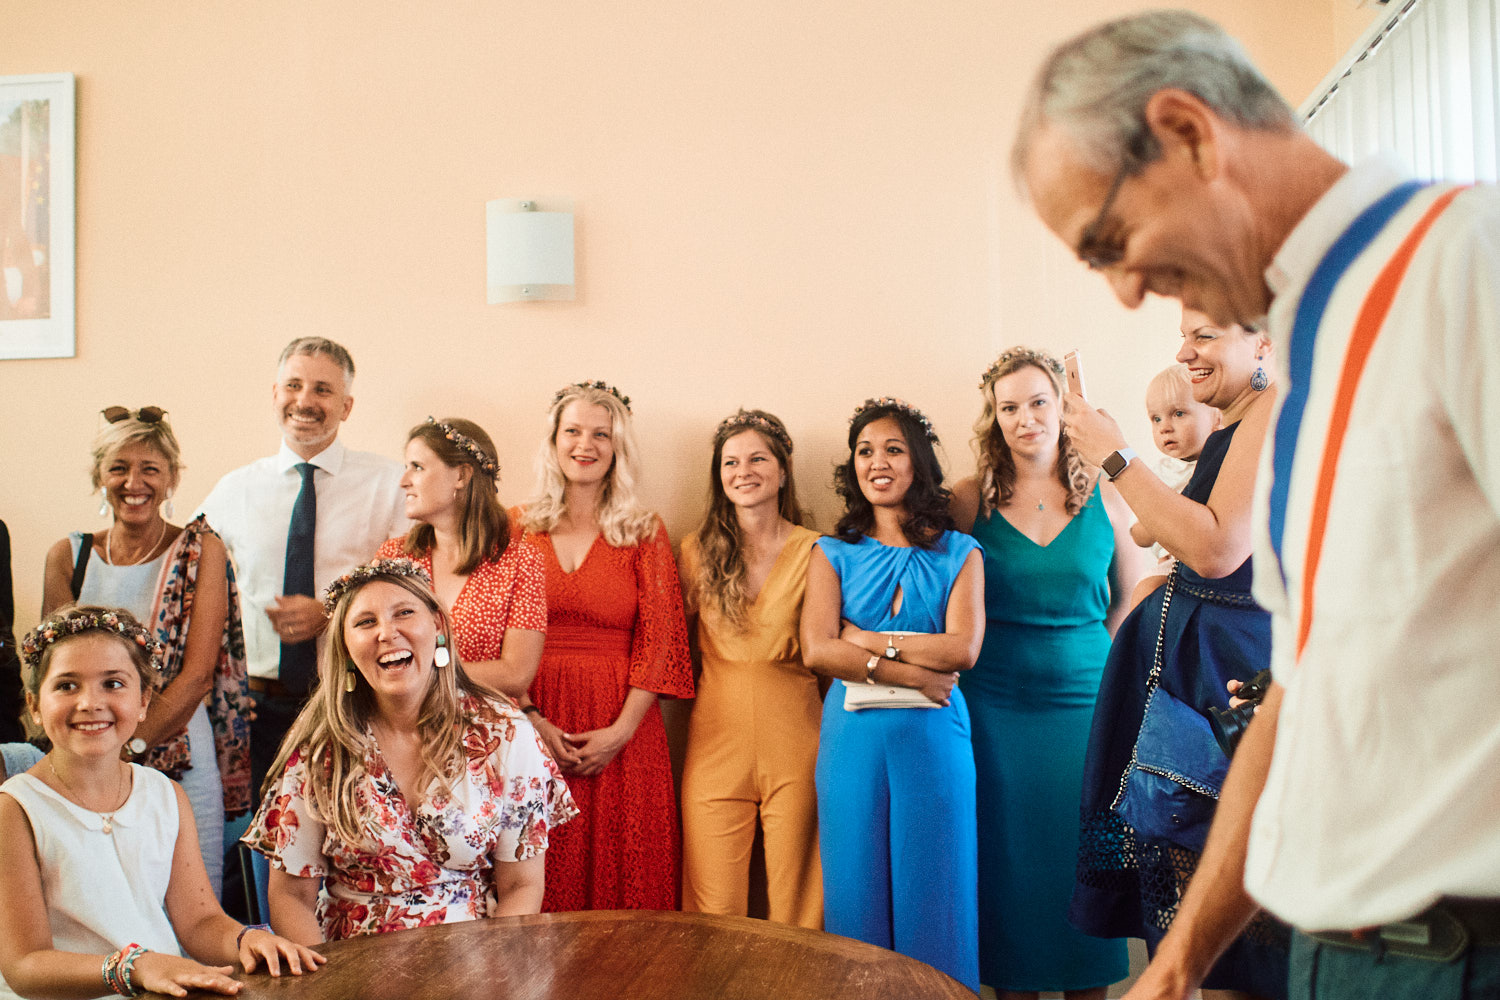 The mayor officiates a French wedding, witnessed by many colourfully dressed guests